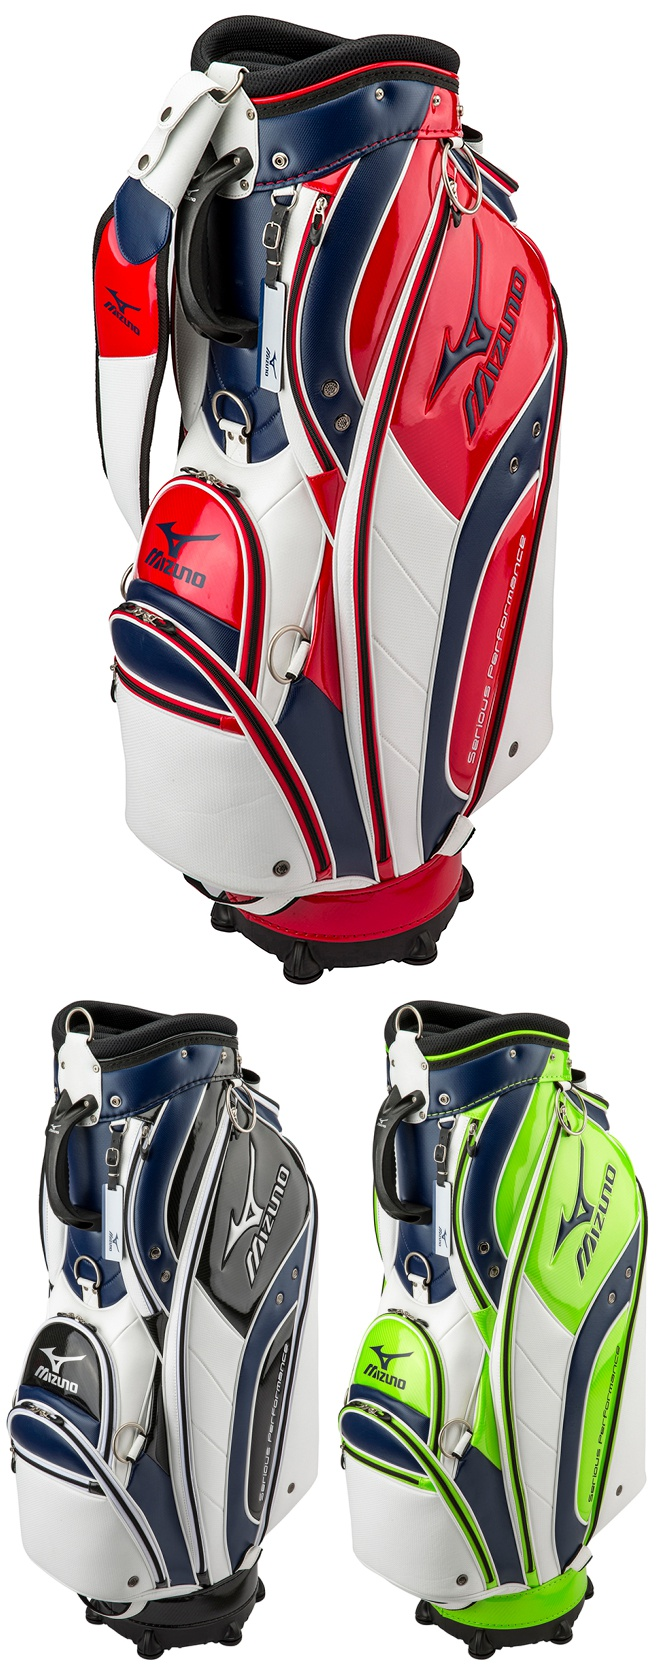 Mizuno 2016 Tour Style Limited Caddy Bag